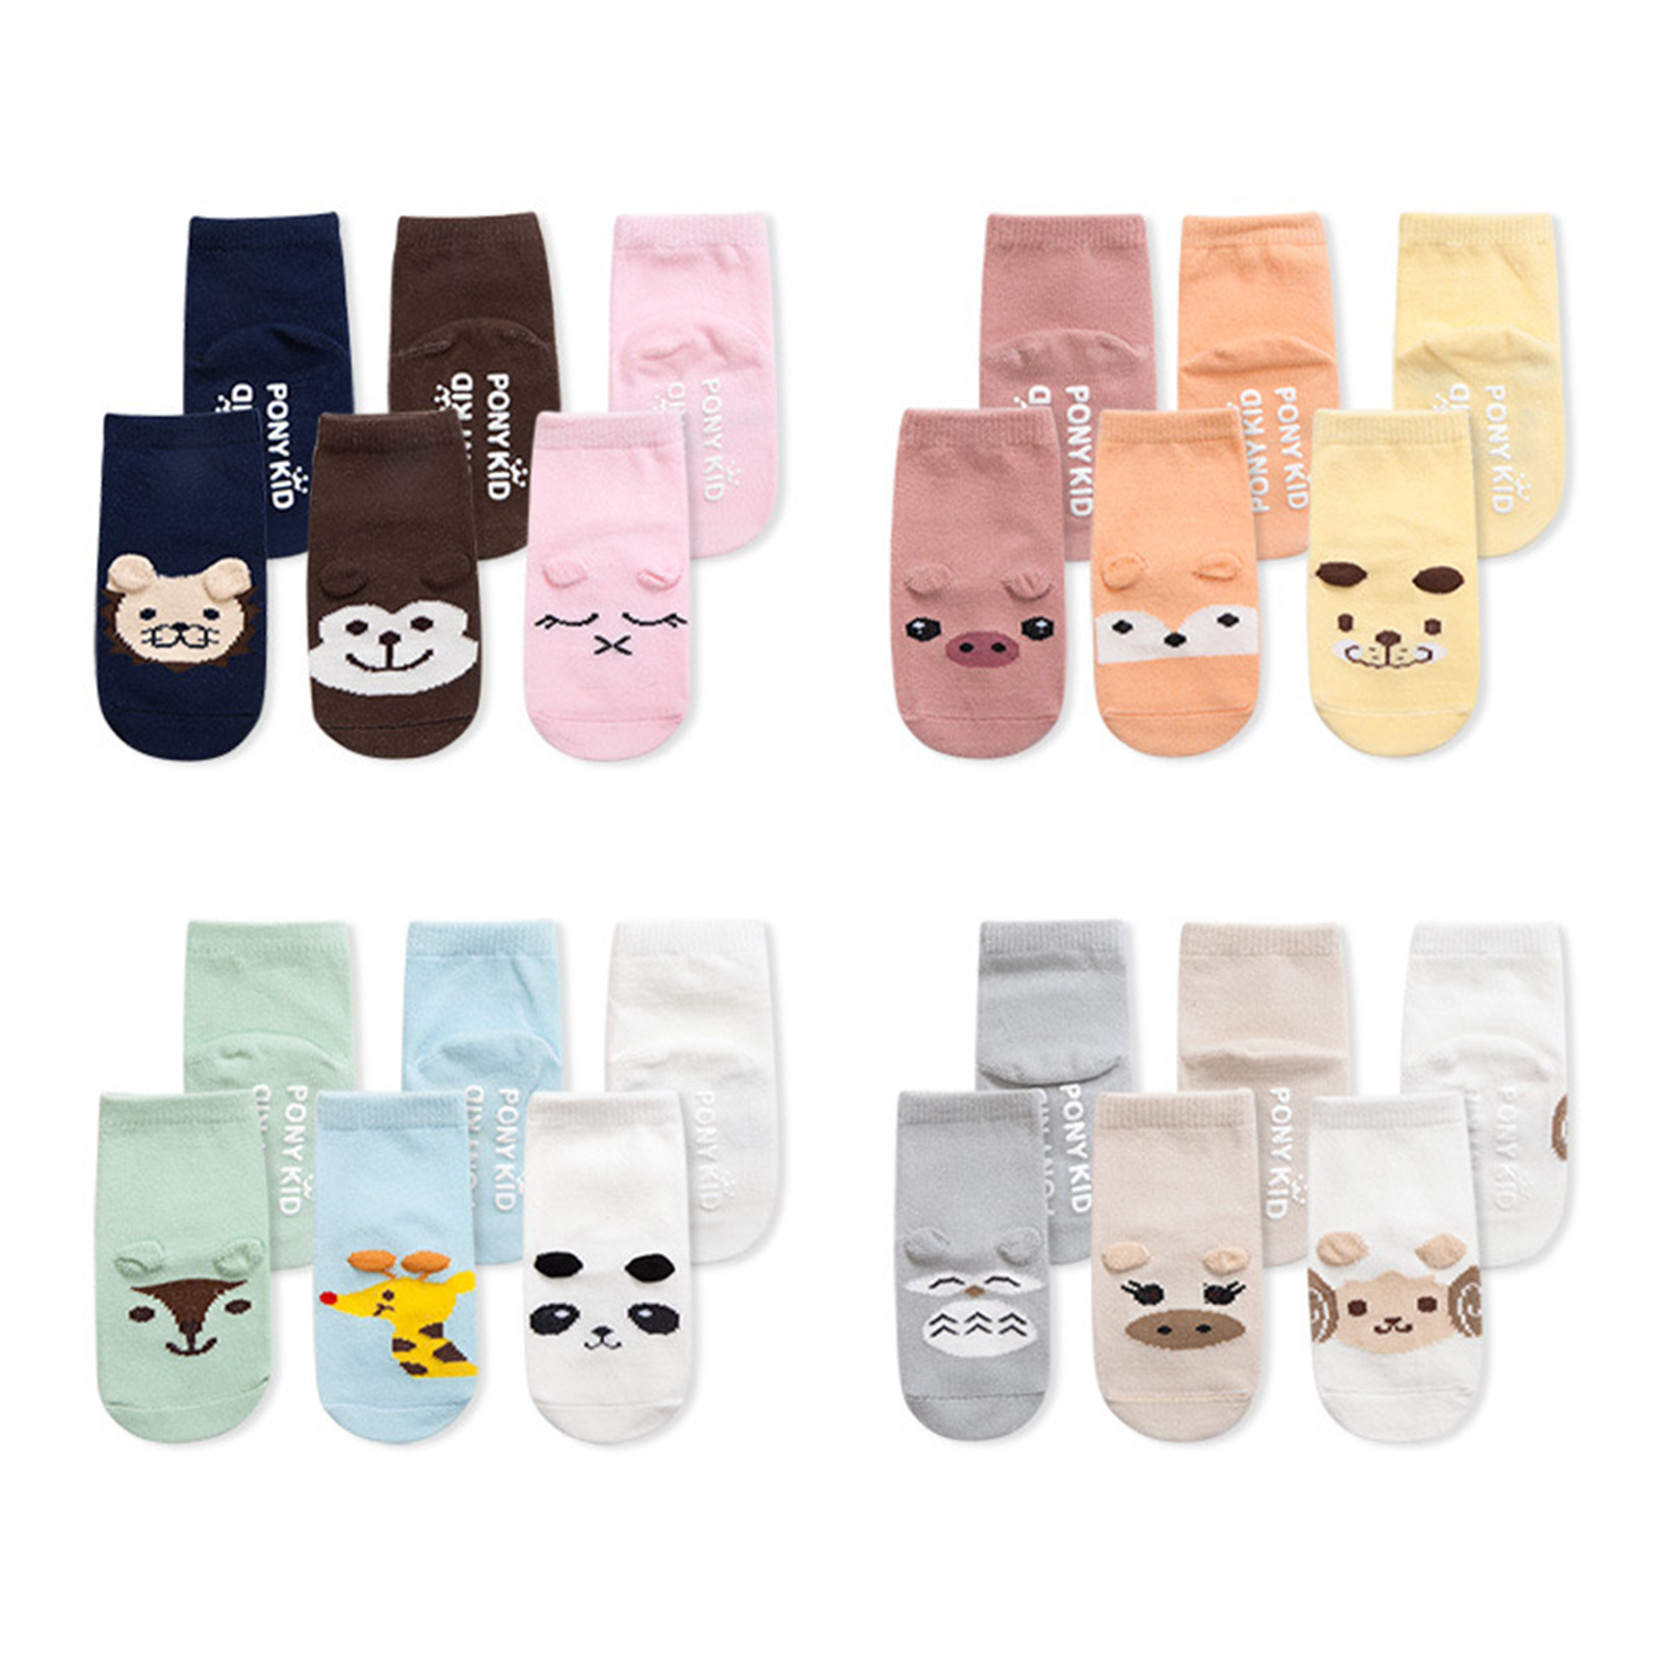 Cotton Anti Slip Baby Socks Newborn Infant Boys Girls Socks Kawaii Cartoon Animal Design ...